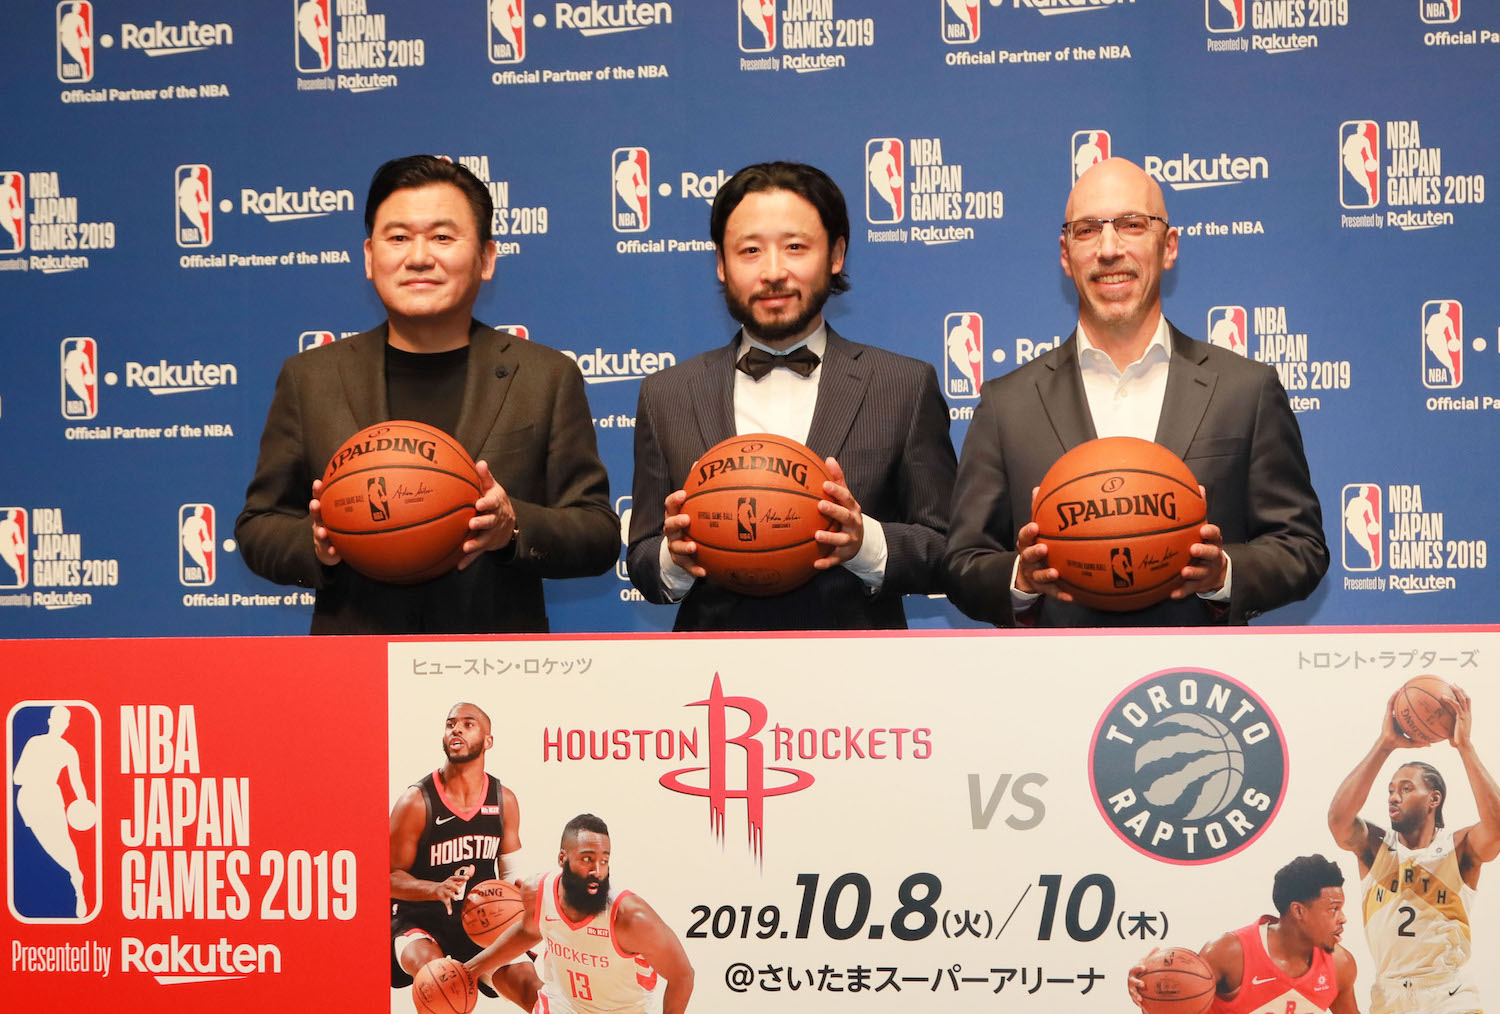 The NBA and Rakuten announced that the Toronto Raptors and the Houston Rockets will play a pair of preseason games in Japan this fall.